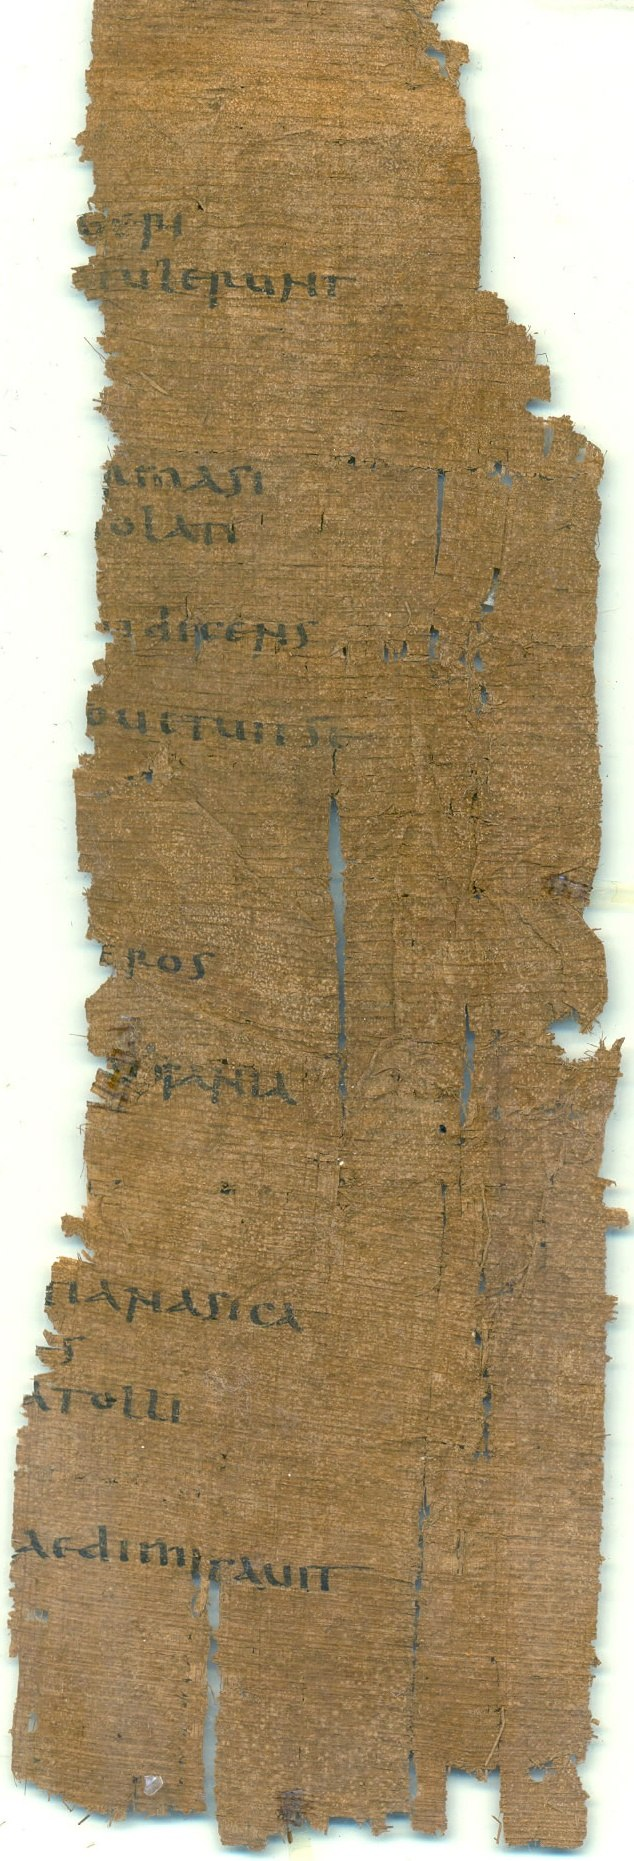 Papyrus PSI 1291 - Epitome of Livy XLVII–XLVIII - Egyptian Museum, Cairo